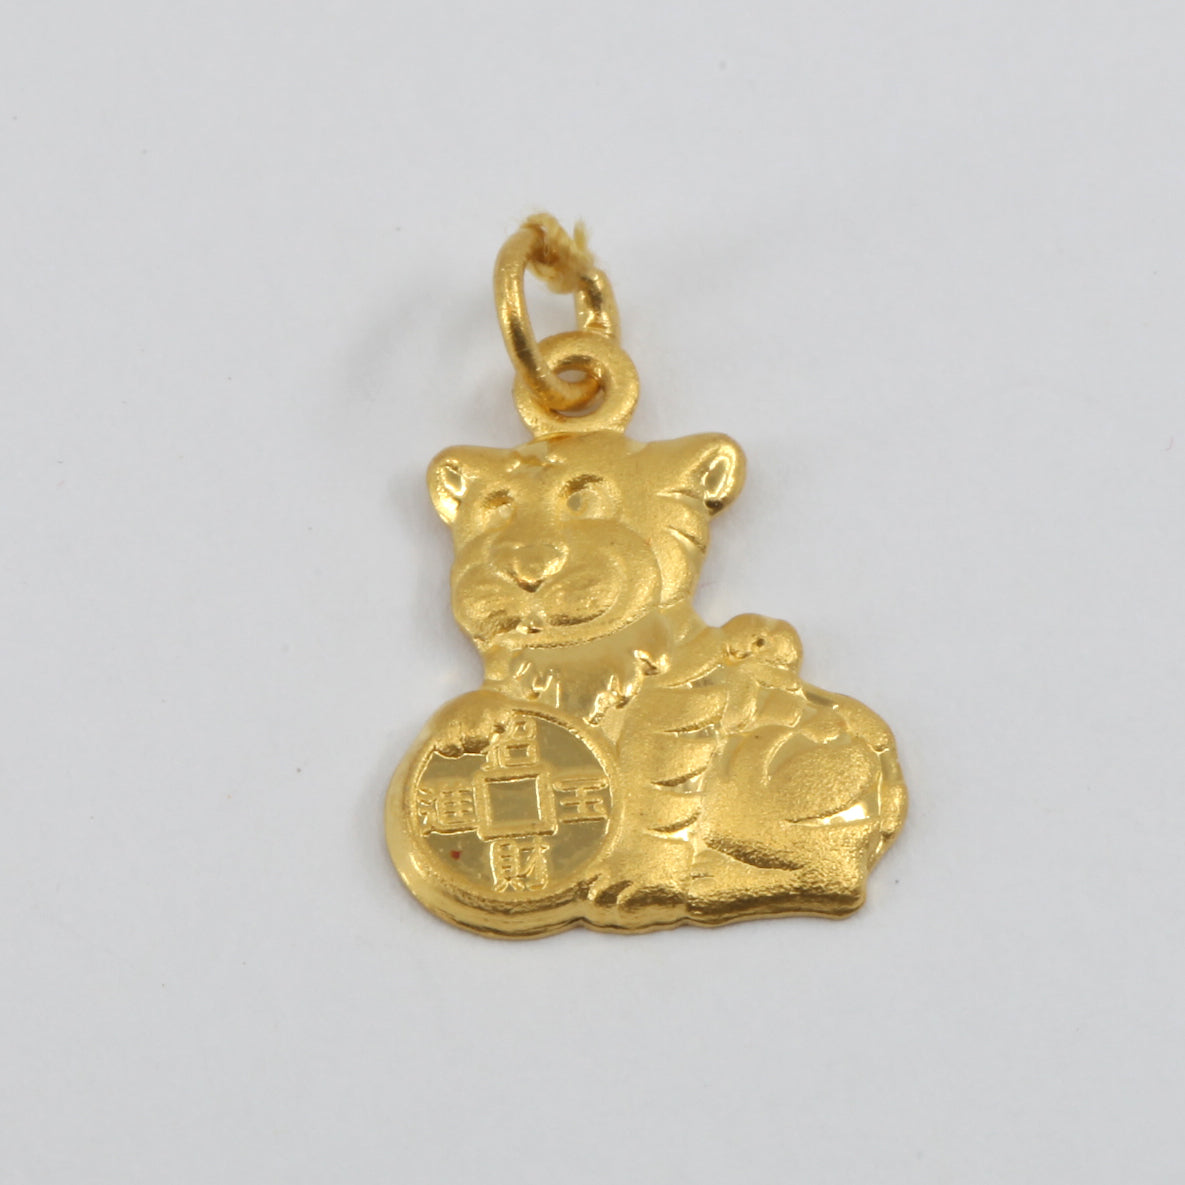 24K Solid Yellow Gold Zodiac Tiger Pendant 2.3 Grams